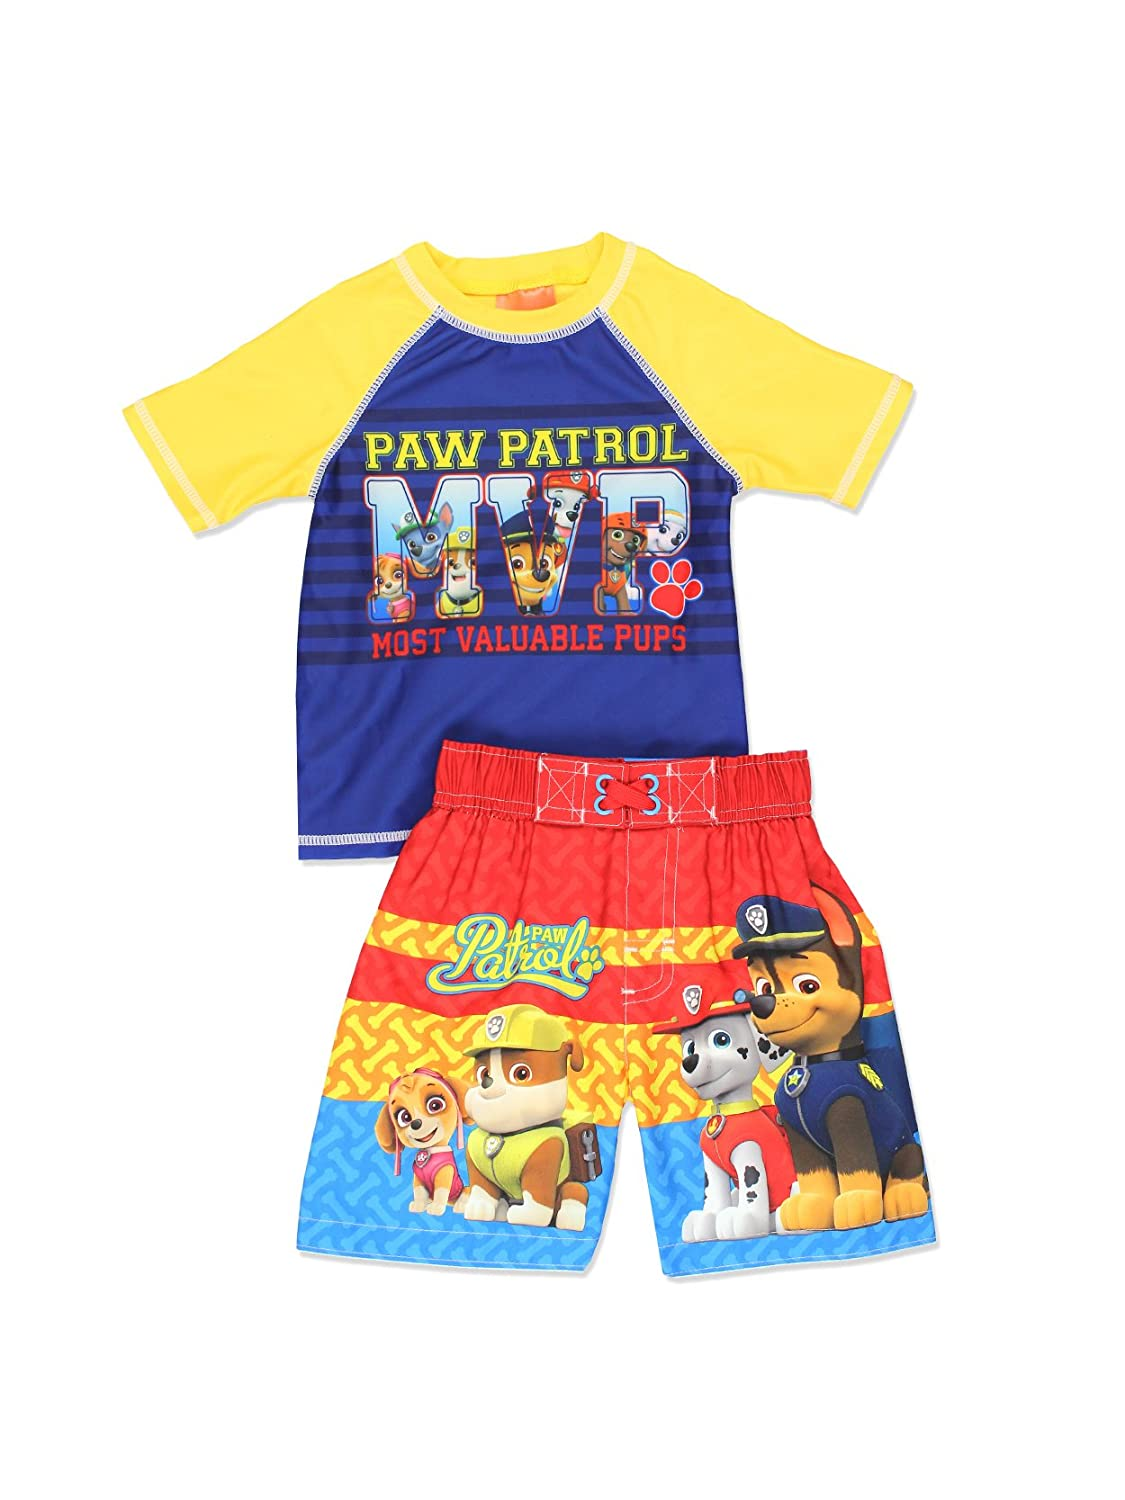 Paw Patrol Boy's Swim Trunks and Rash Guard Set (Toddler) Dreamwave